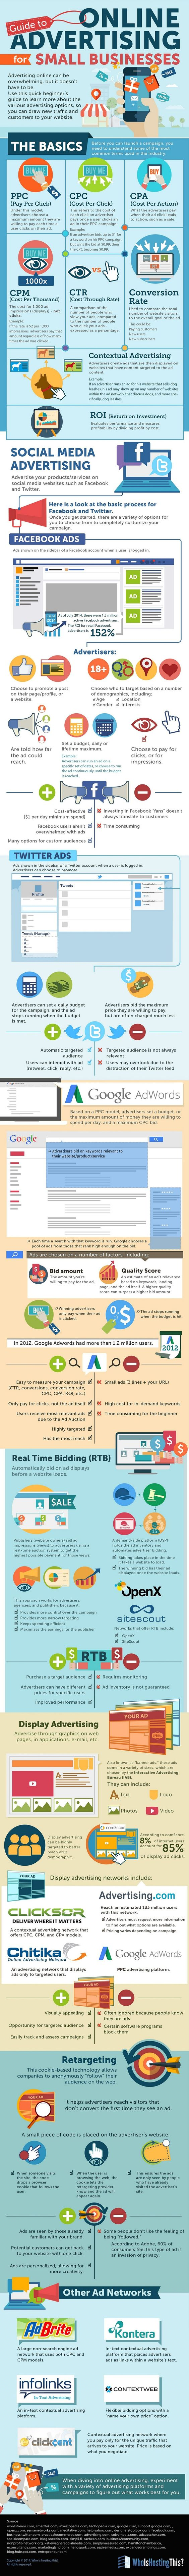 Advertising online can be overwhelming! Use this #infographic as a quick beginner's guide to online advertising success.